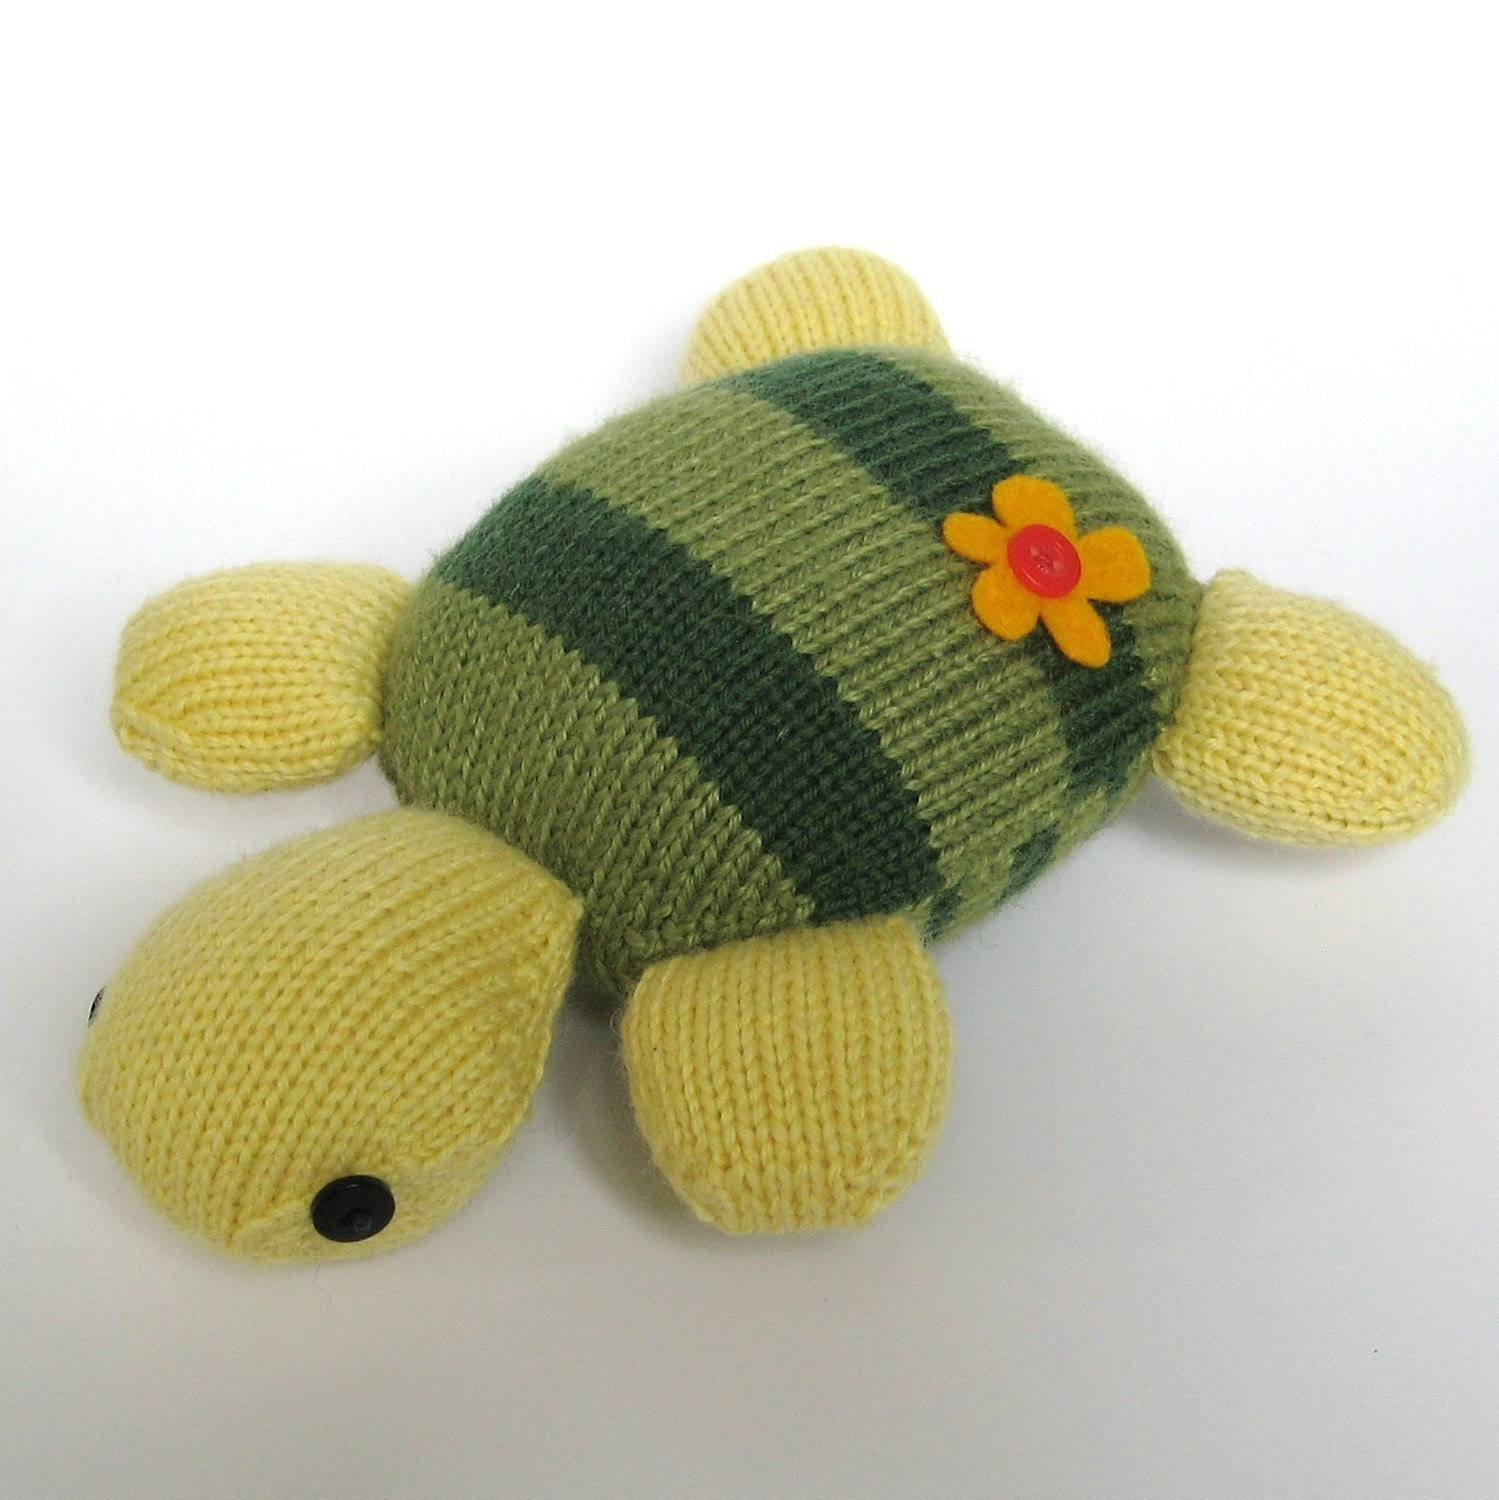 Trapper Hat Knitting Pattern : Topsy Turvy Turtle toy animal knitting pattern by fluffandfuzz Craftjuice H...